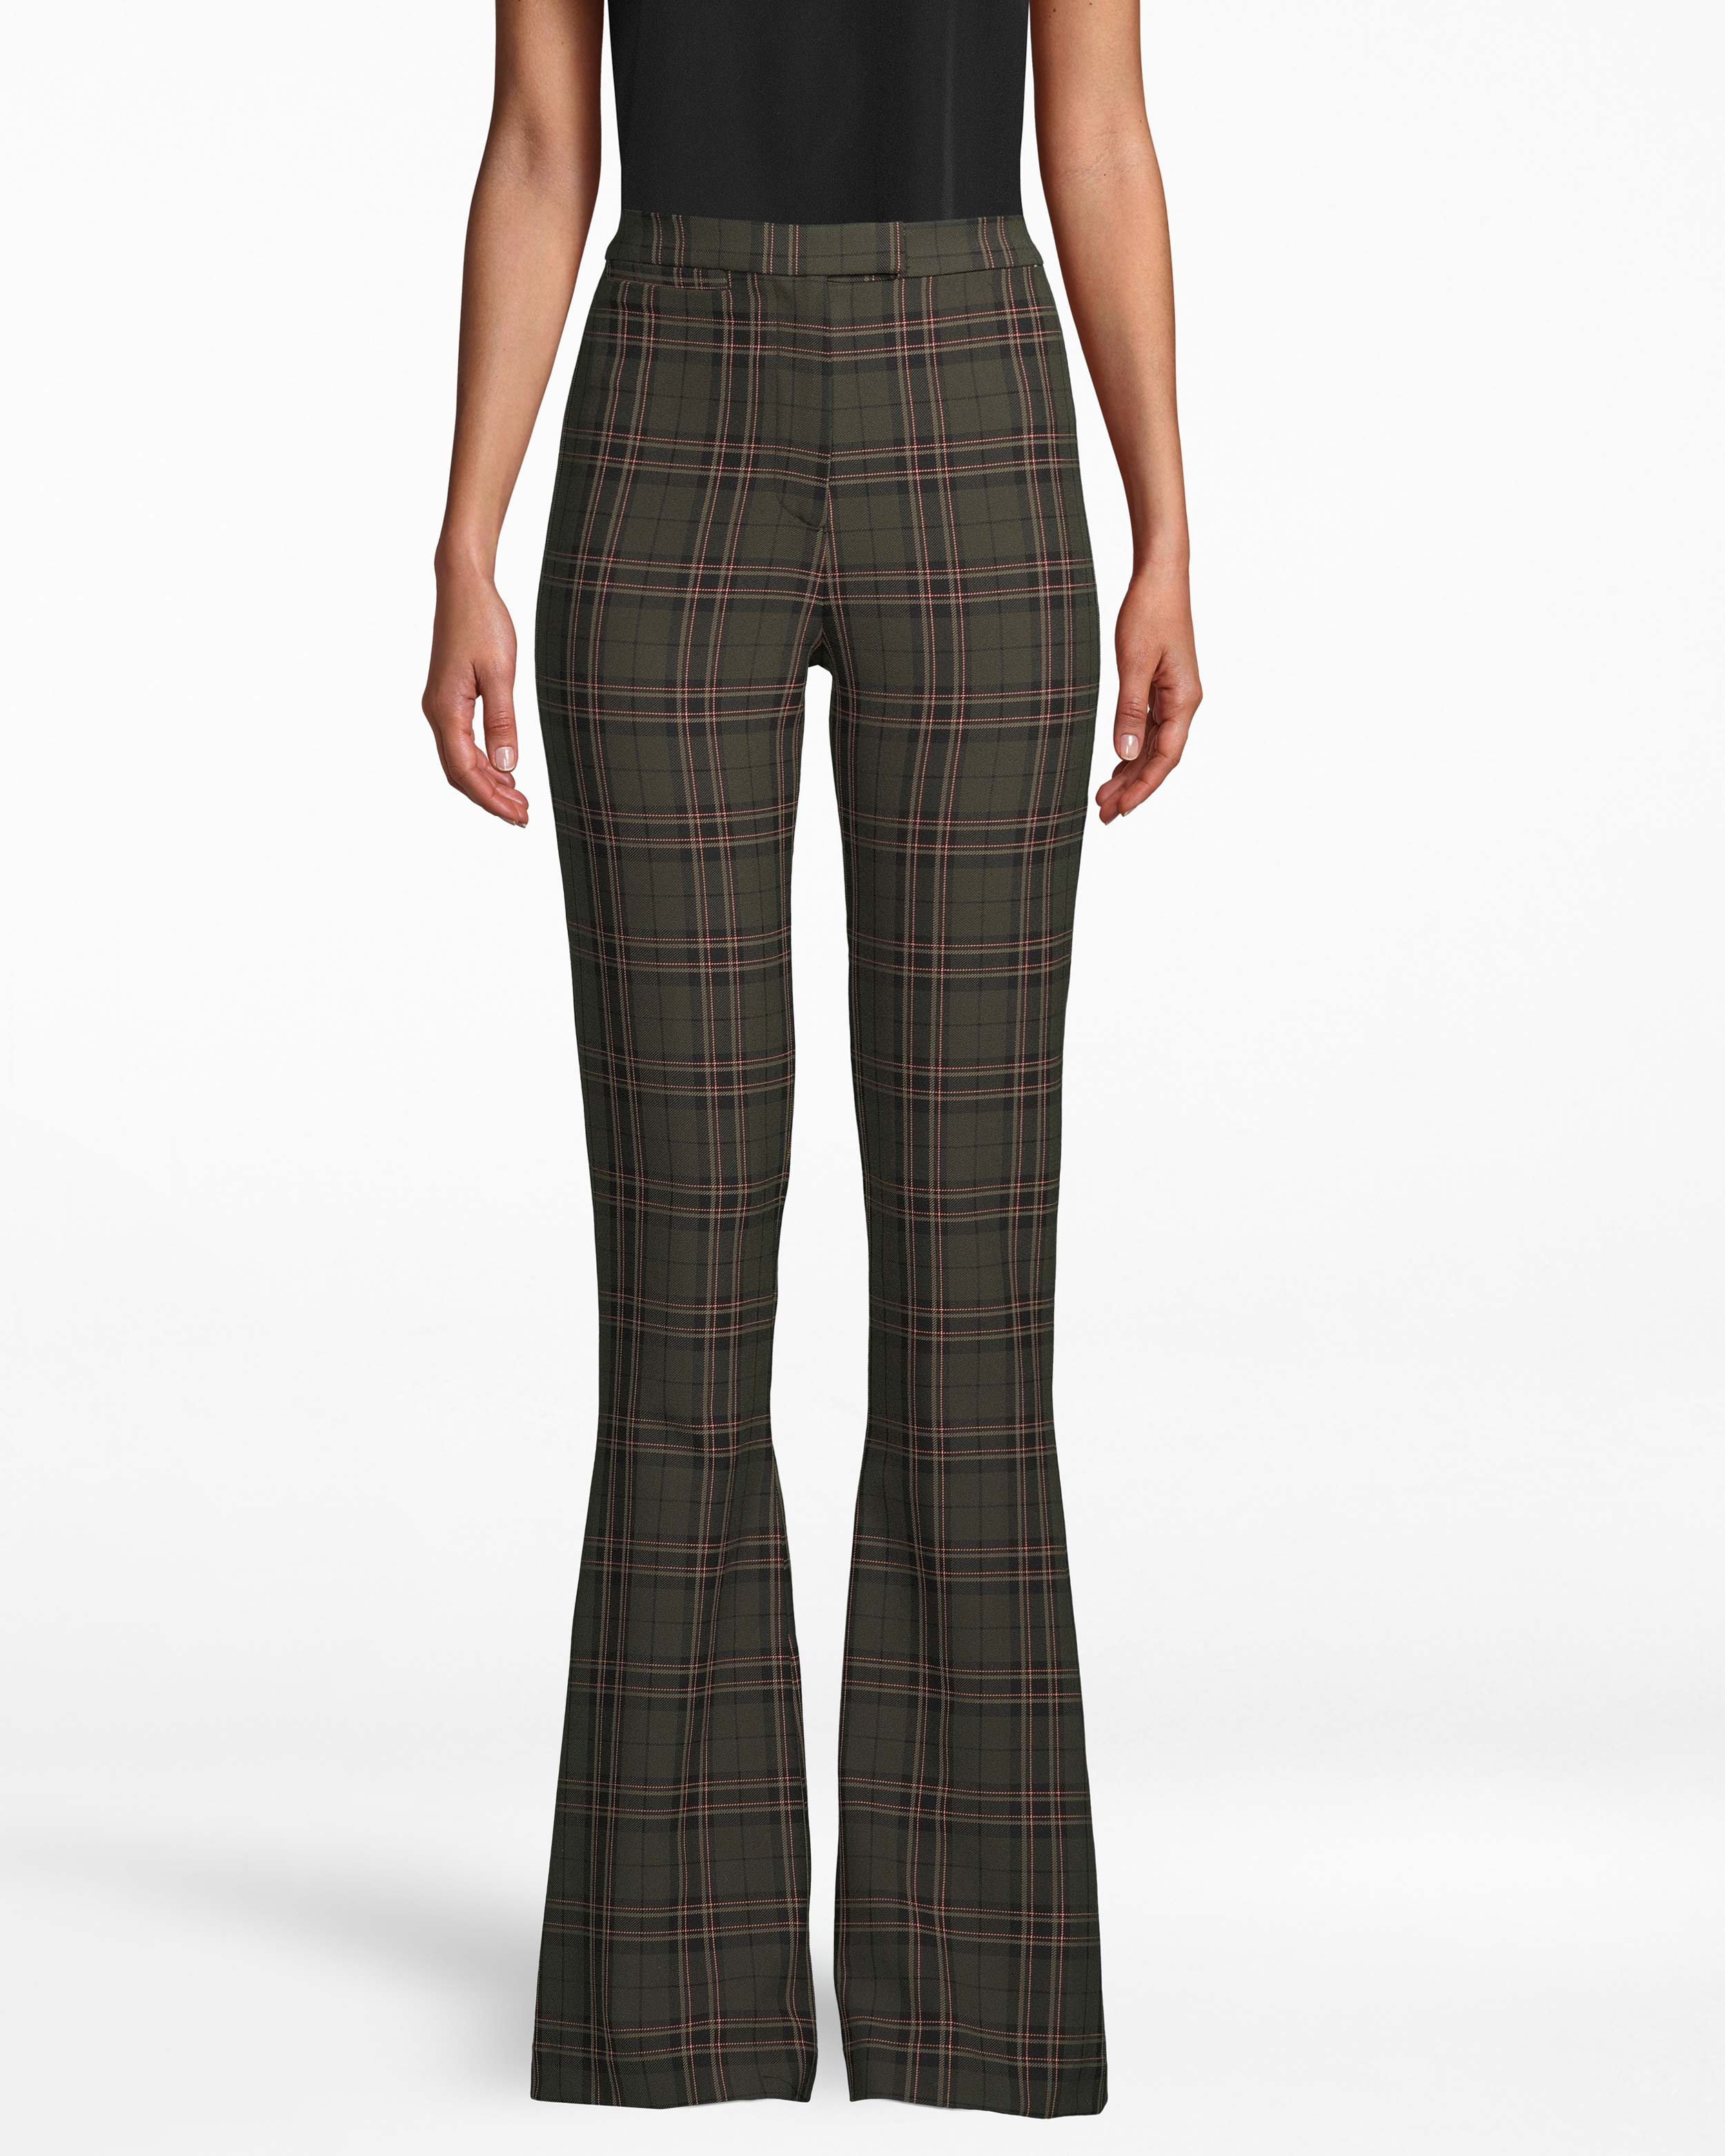 nicole miller jagger plaid bell bottom pant in olive green | polyester/spandex/viscose | size 0